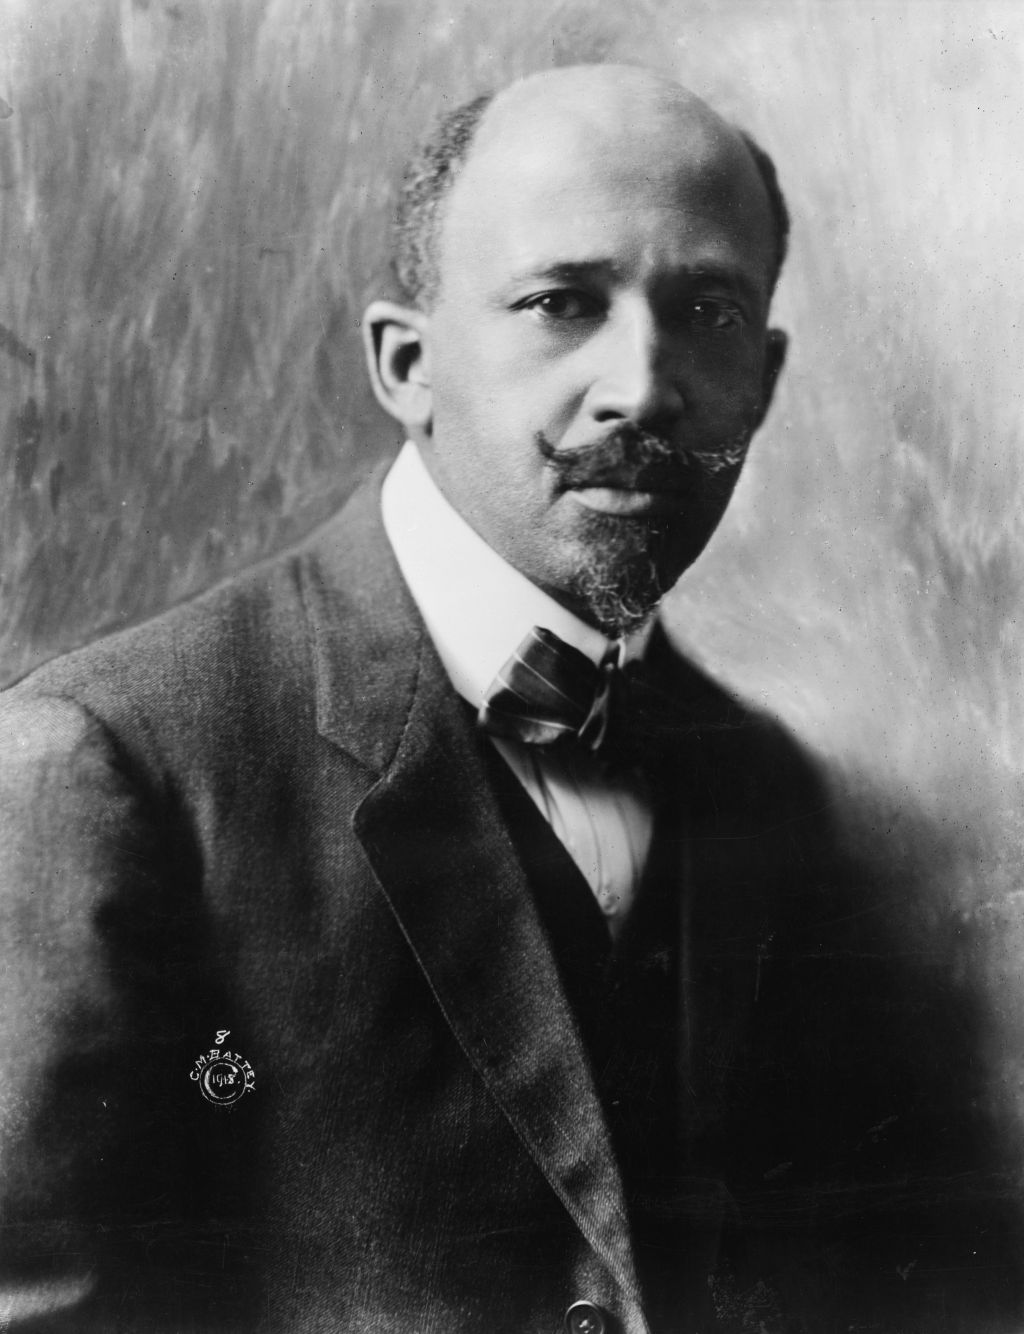 web du bois racial co existence essay Critical review of the negro by web dubois the book i have chosen for review is the negro, written by william edward burghardt du bois the book was originally published in 1915 by the henry holt and company press out of new york, but the edition i read was a 2001 unabridged reprint of the first edition from dover publications inc.